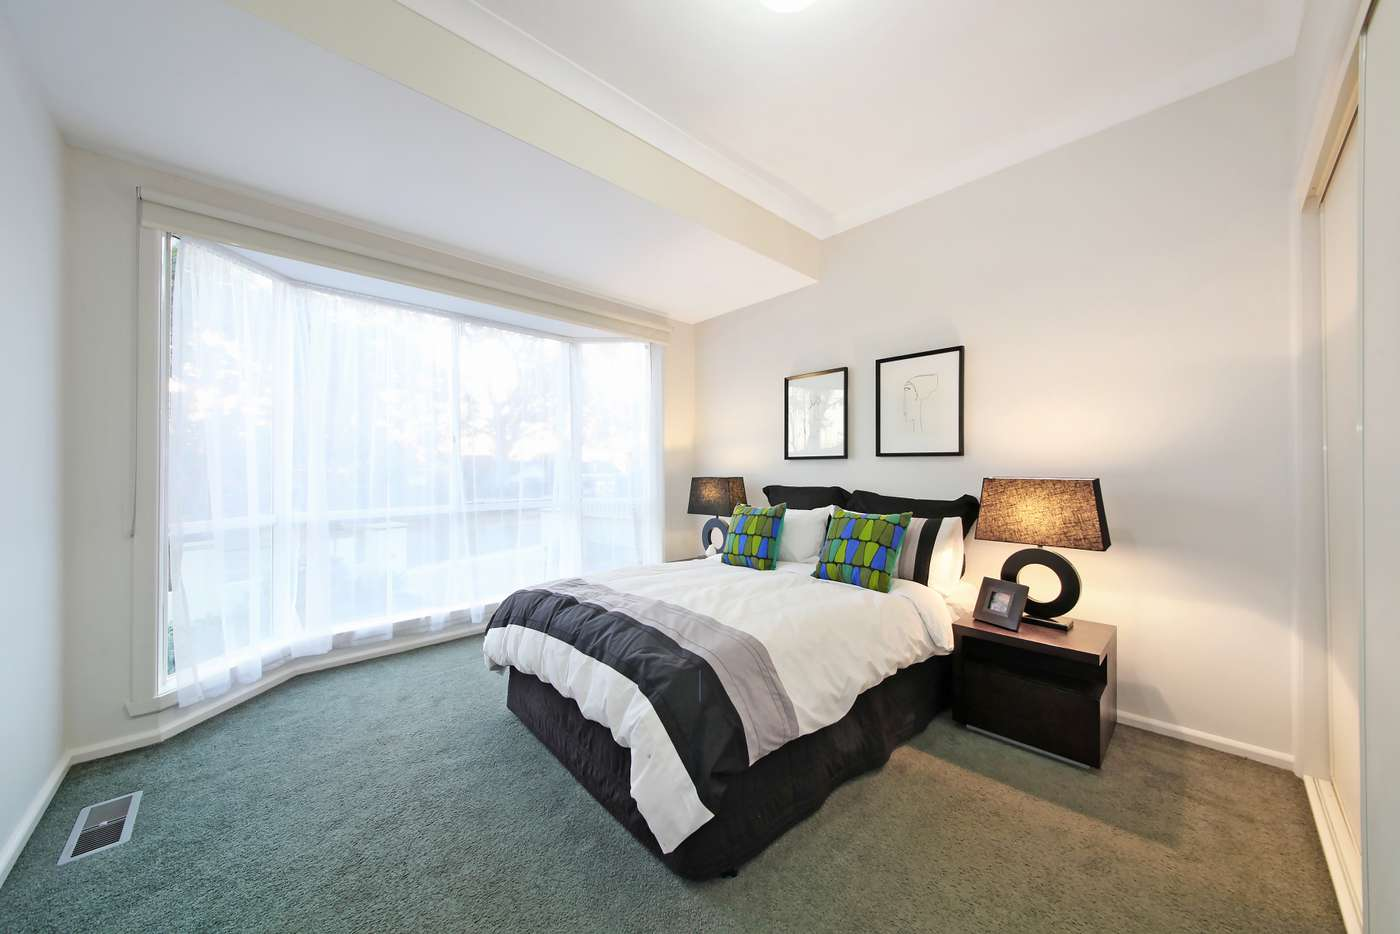 Seventh view of Homely house listing, 18 Railway Crescent, Bentleigh VIC 3204